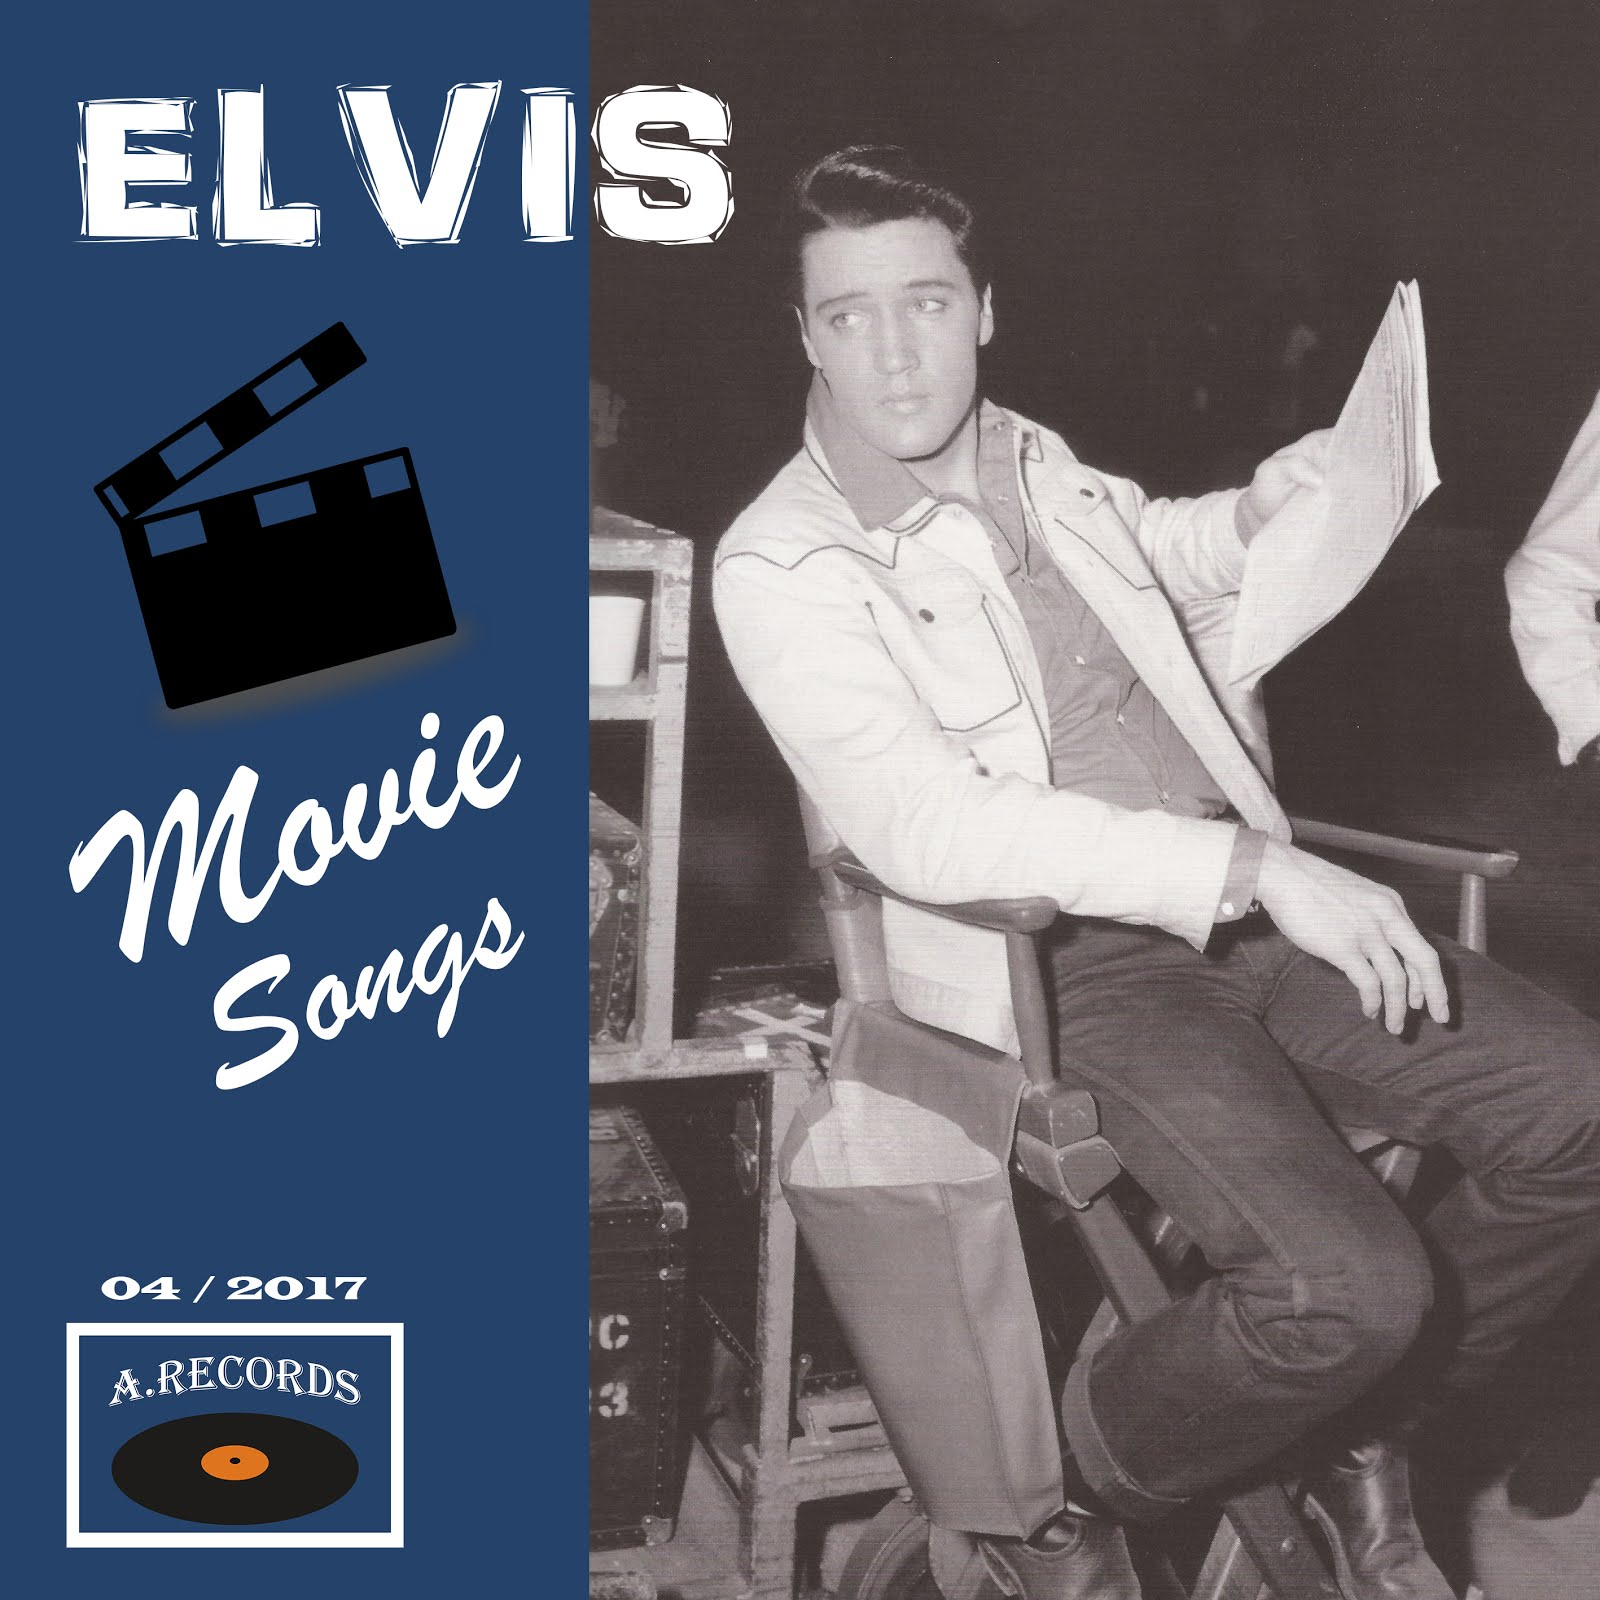 Elvis - Movie Songs (April 2017)